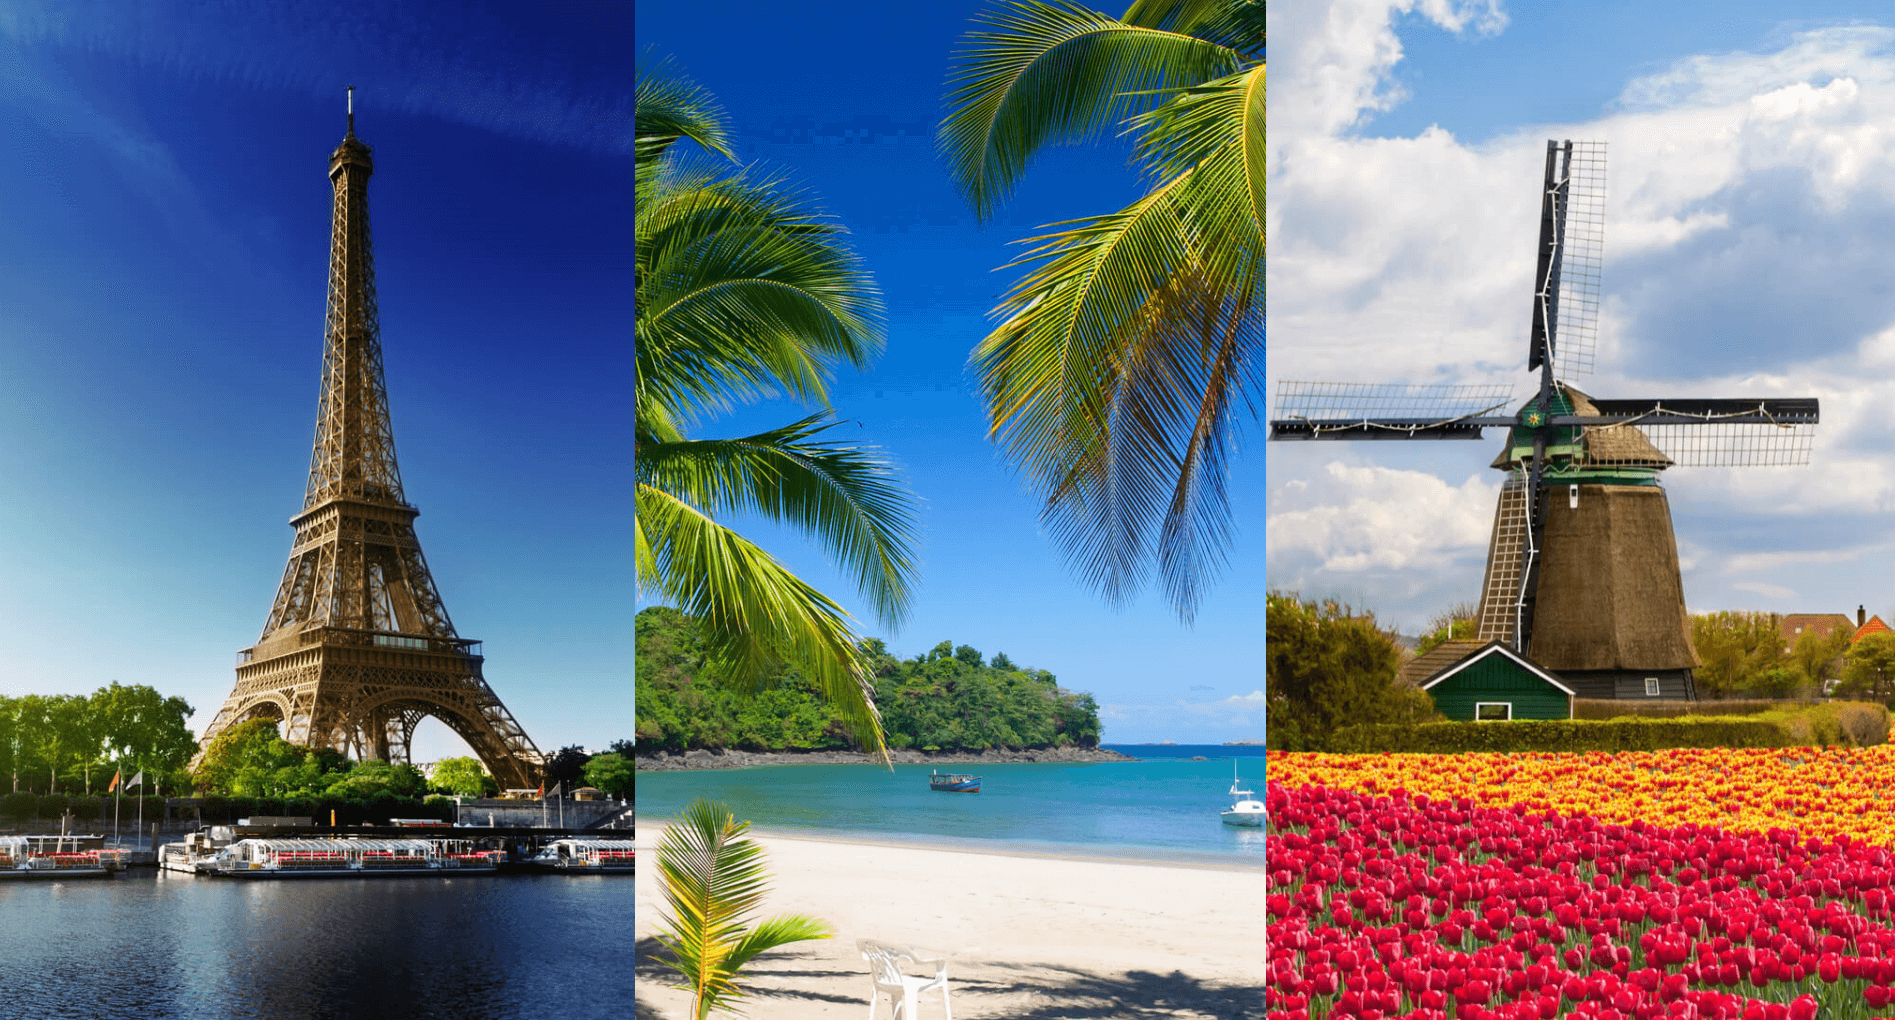 3 IN 1 TRIP: UK cities to the Netherlands, Panama and France from only £306 roundtrip